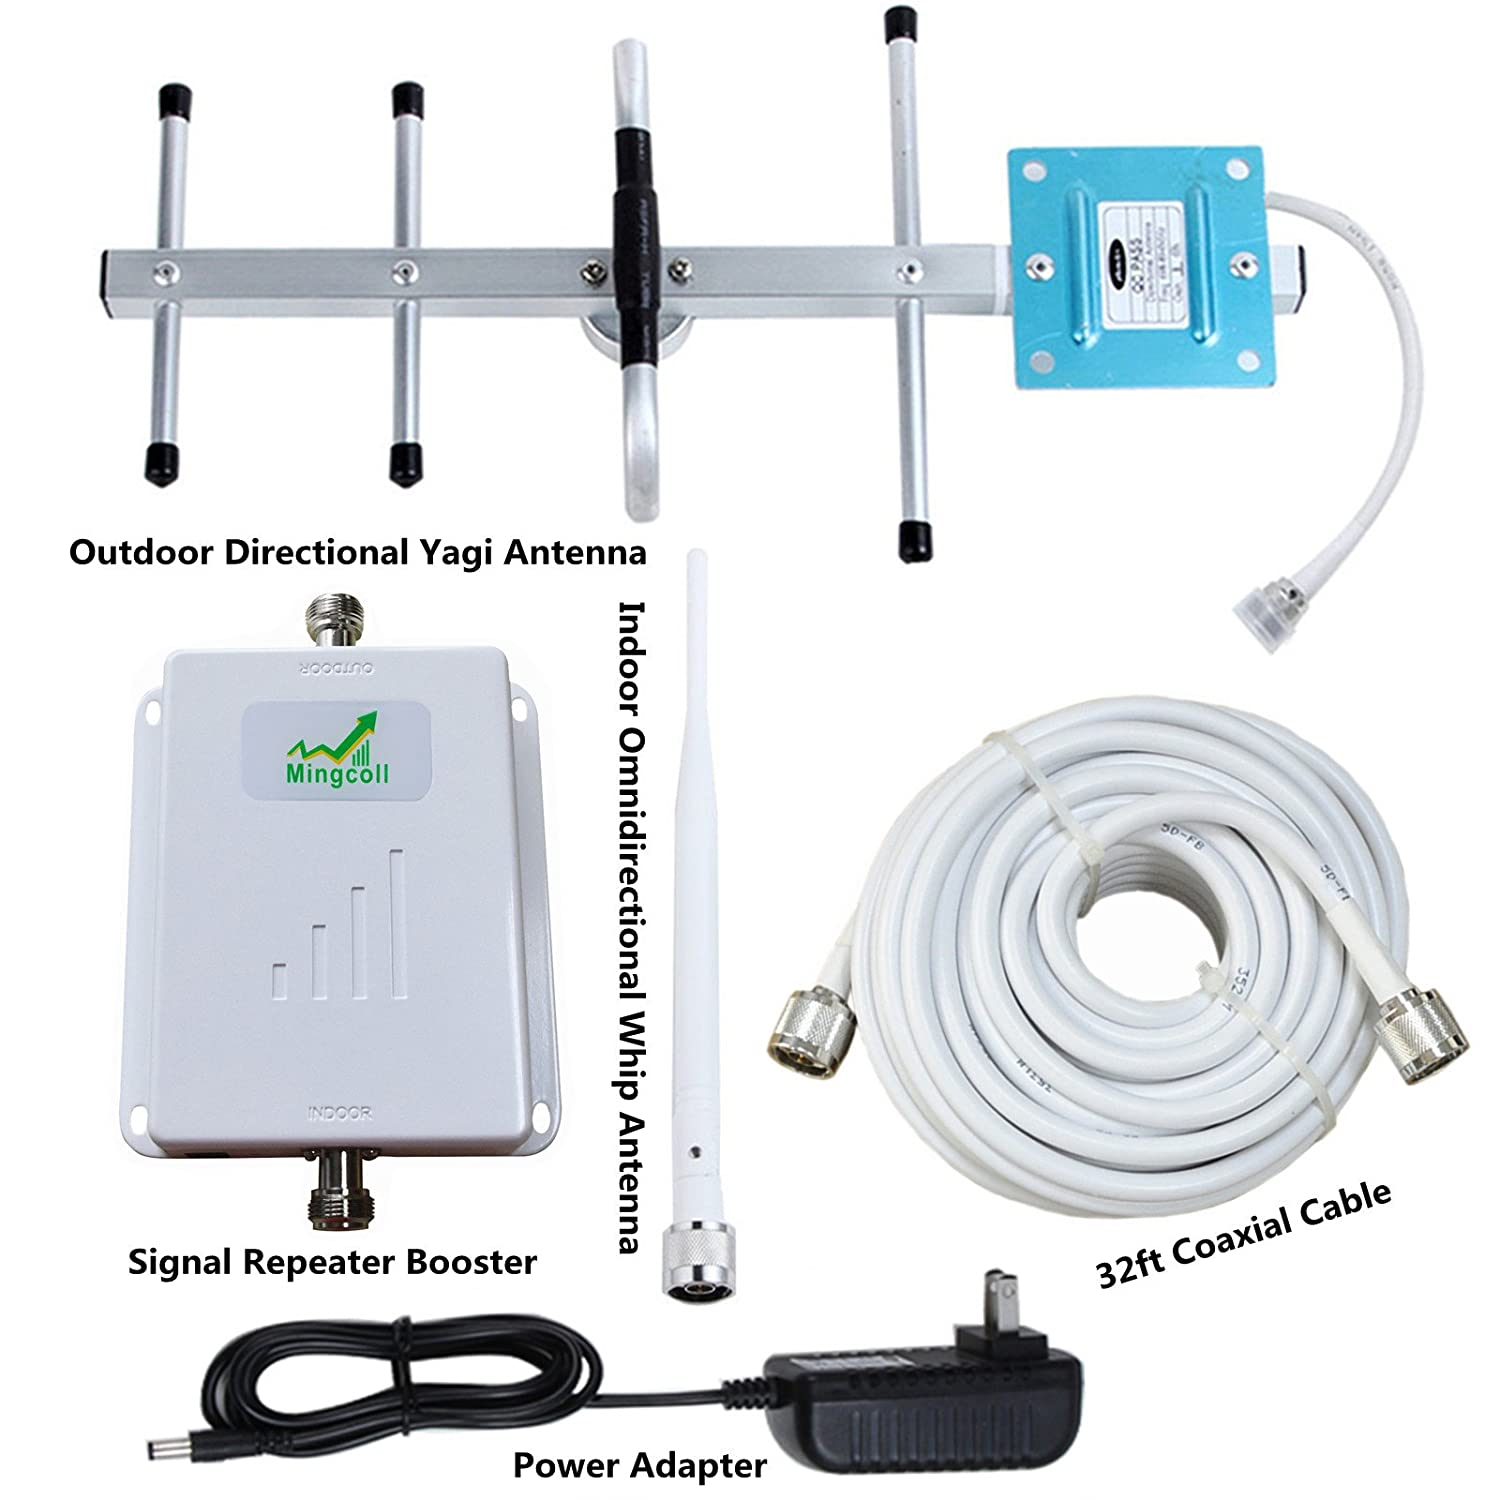 Amazon.com: Mingcoll ATT Cell Mobile Phone Signal Booster 700MHz Band 12/17 Cell Signal Amplifier Kit for Home (XWA70-83G): Cell Phones & Accessories